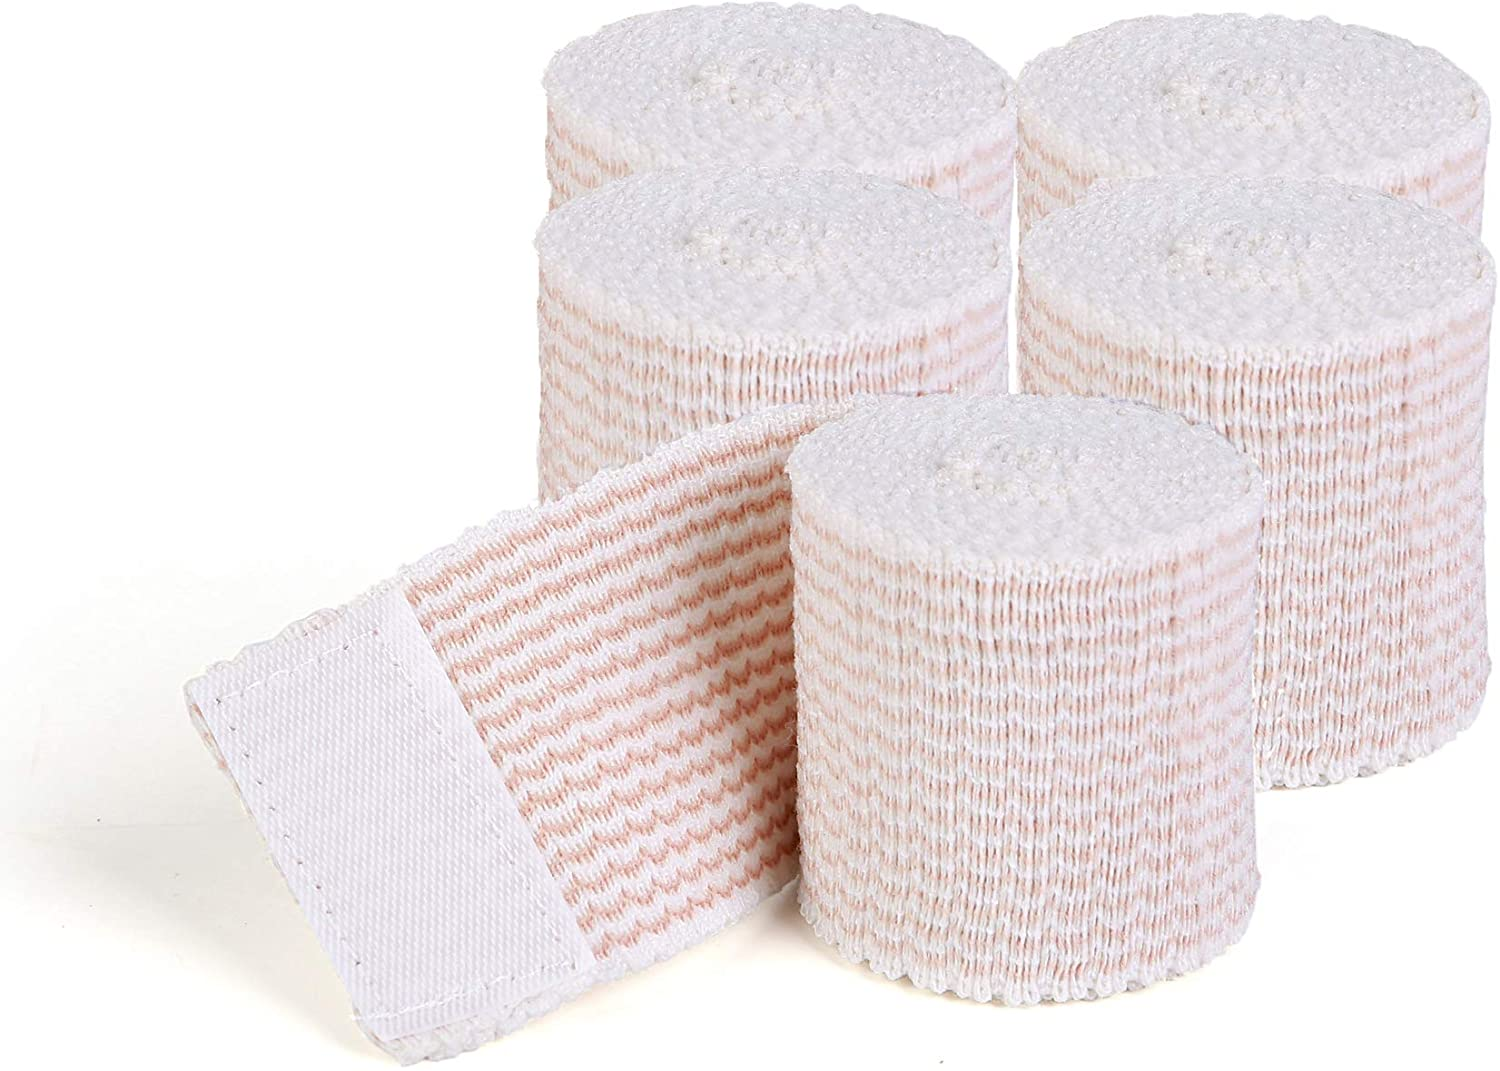 HOSPORA Cotton Elastic Bandage, 2 Inch x 13-15 feet Stretched Length with Hook and Loop Closure, Latex-Free Compression Bandage(Pack of 5)